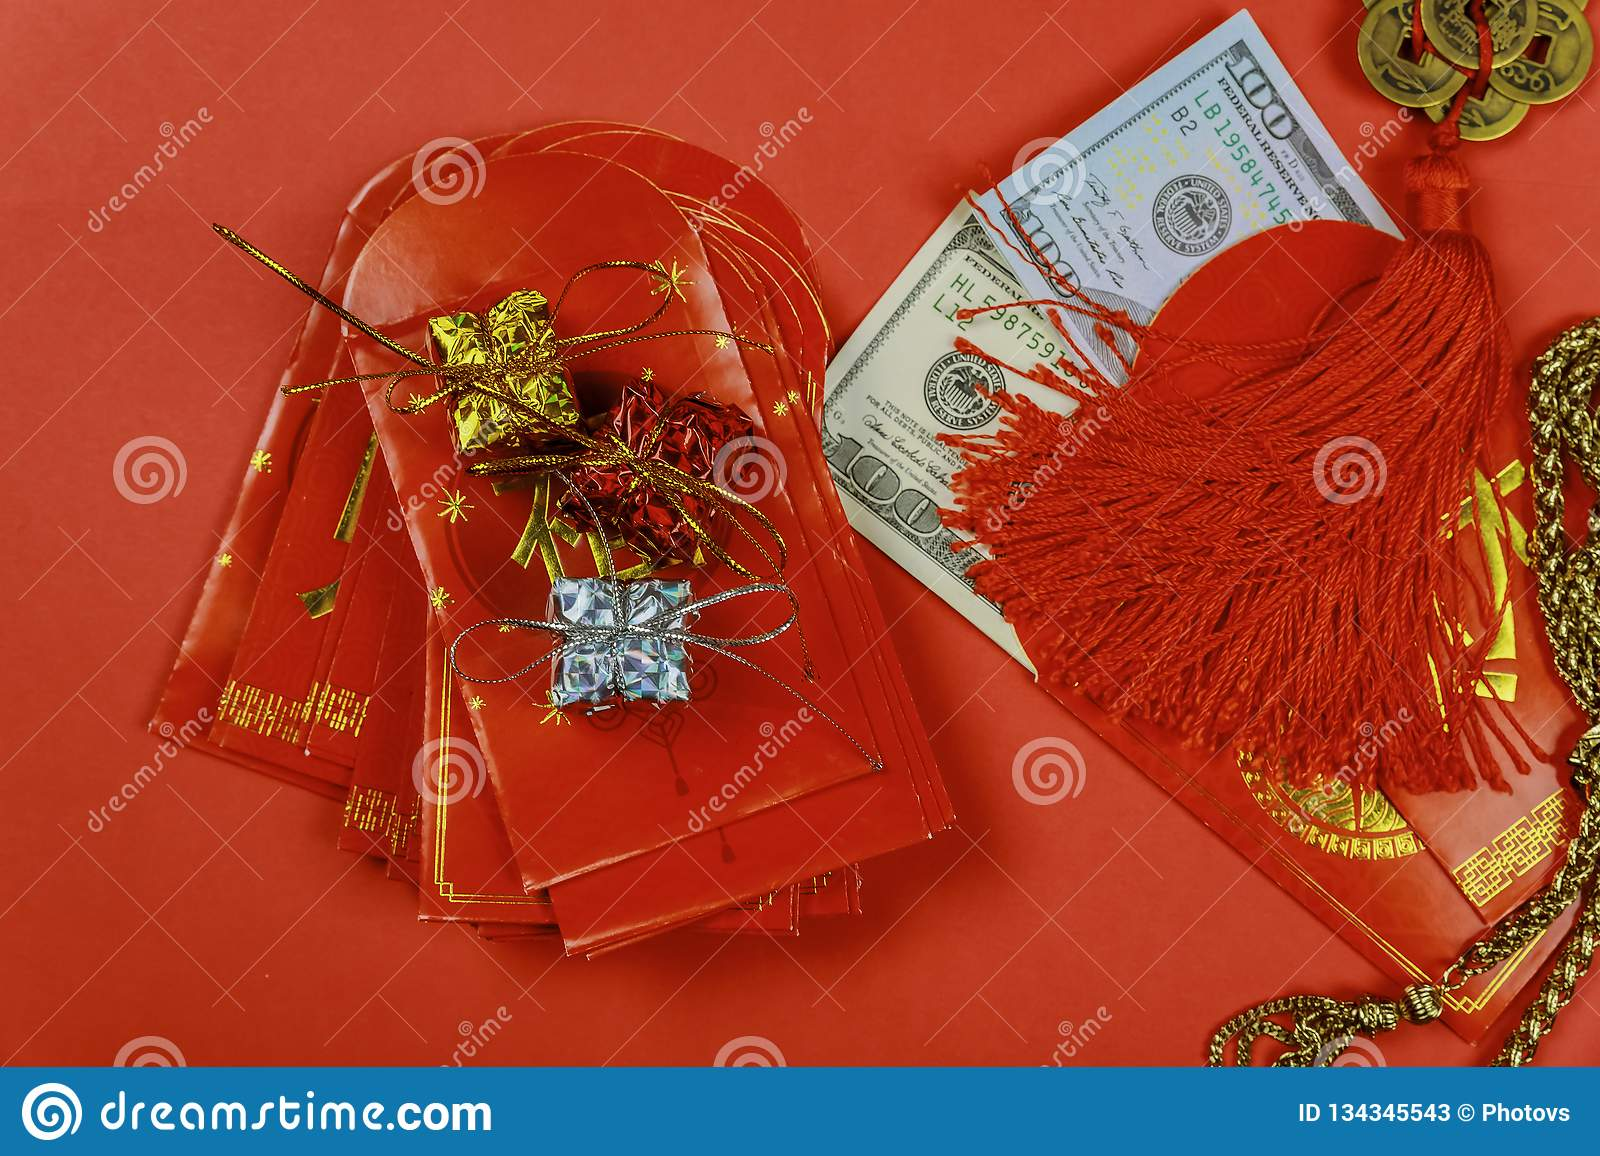 Chinese new year festival decorations, and pow or red packet with dollars inside